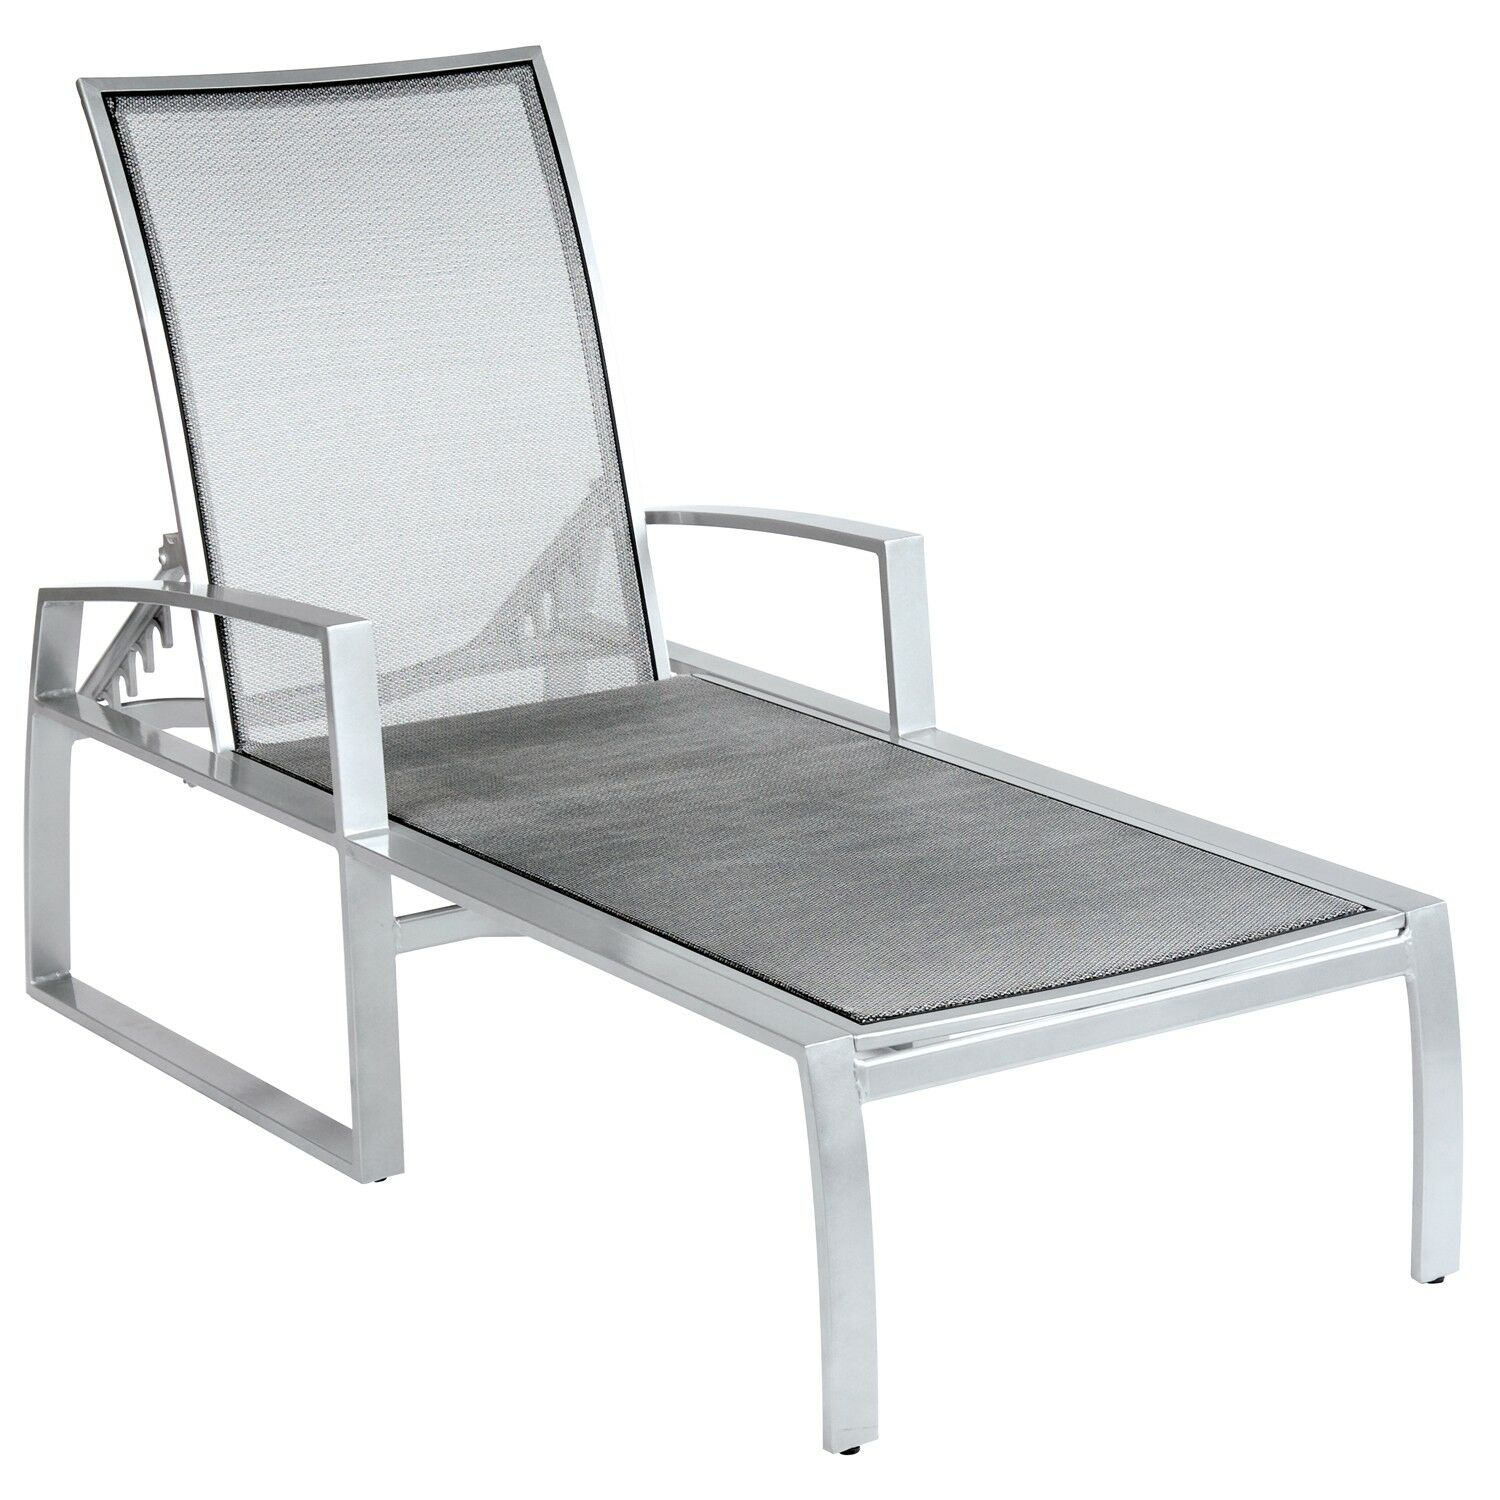 Wyatt Flex Sling Adjustable Chaise Lounge Frame Color: Weathered White